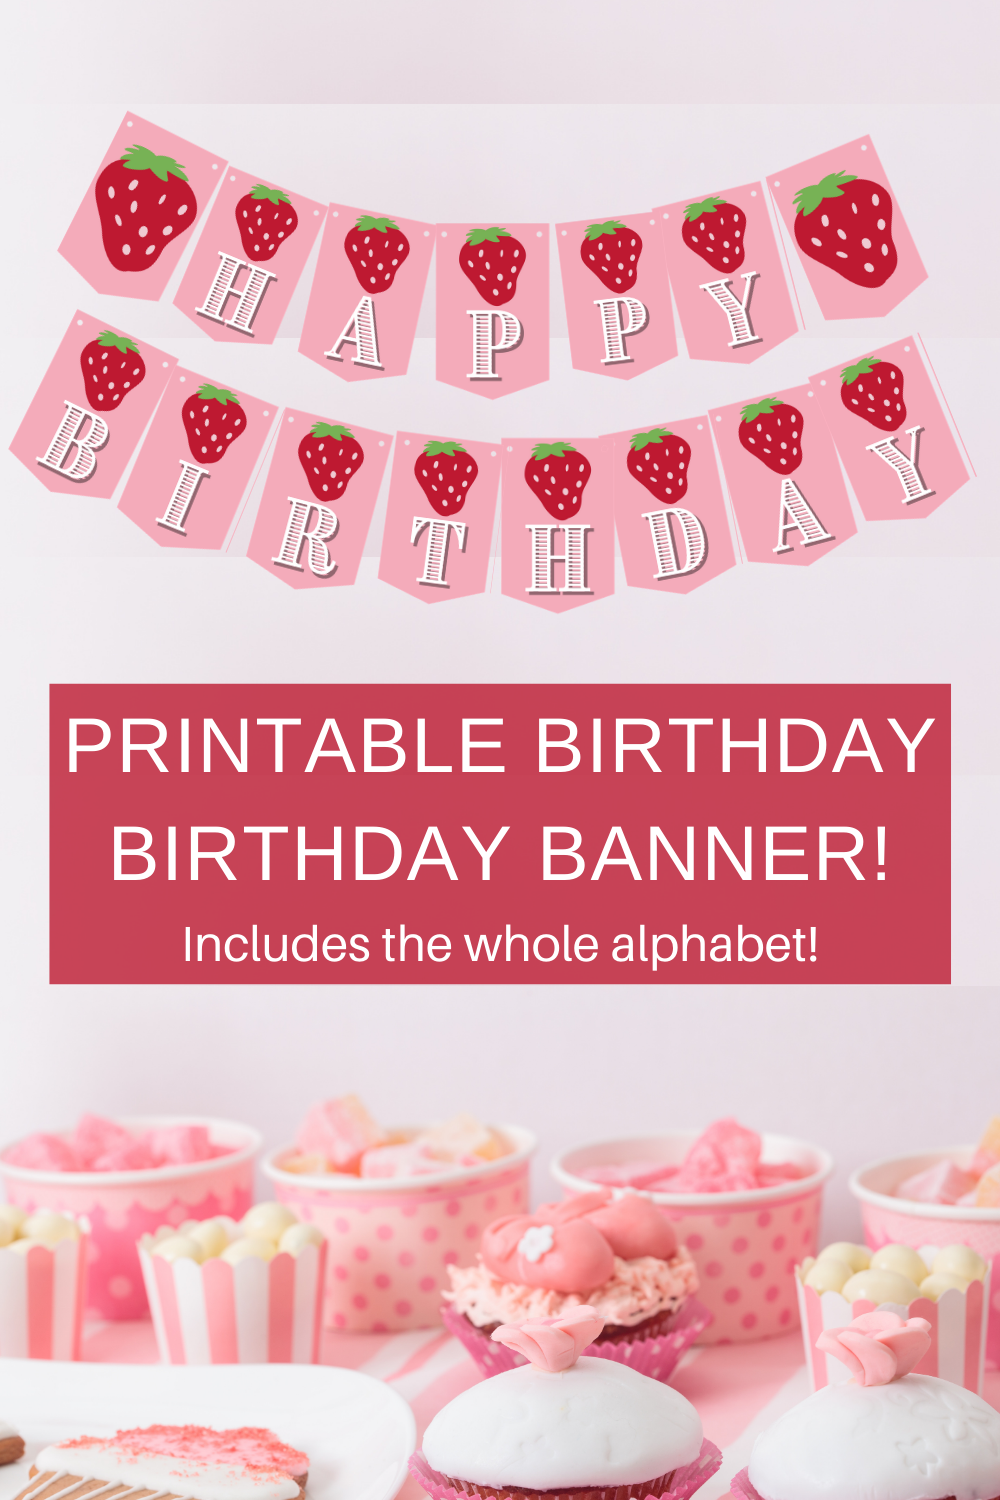 strawberry themed birthday party decorations for a first birthday